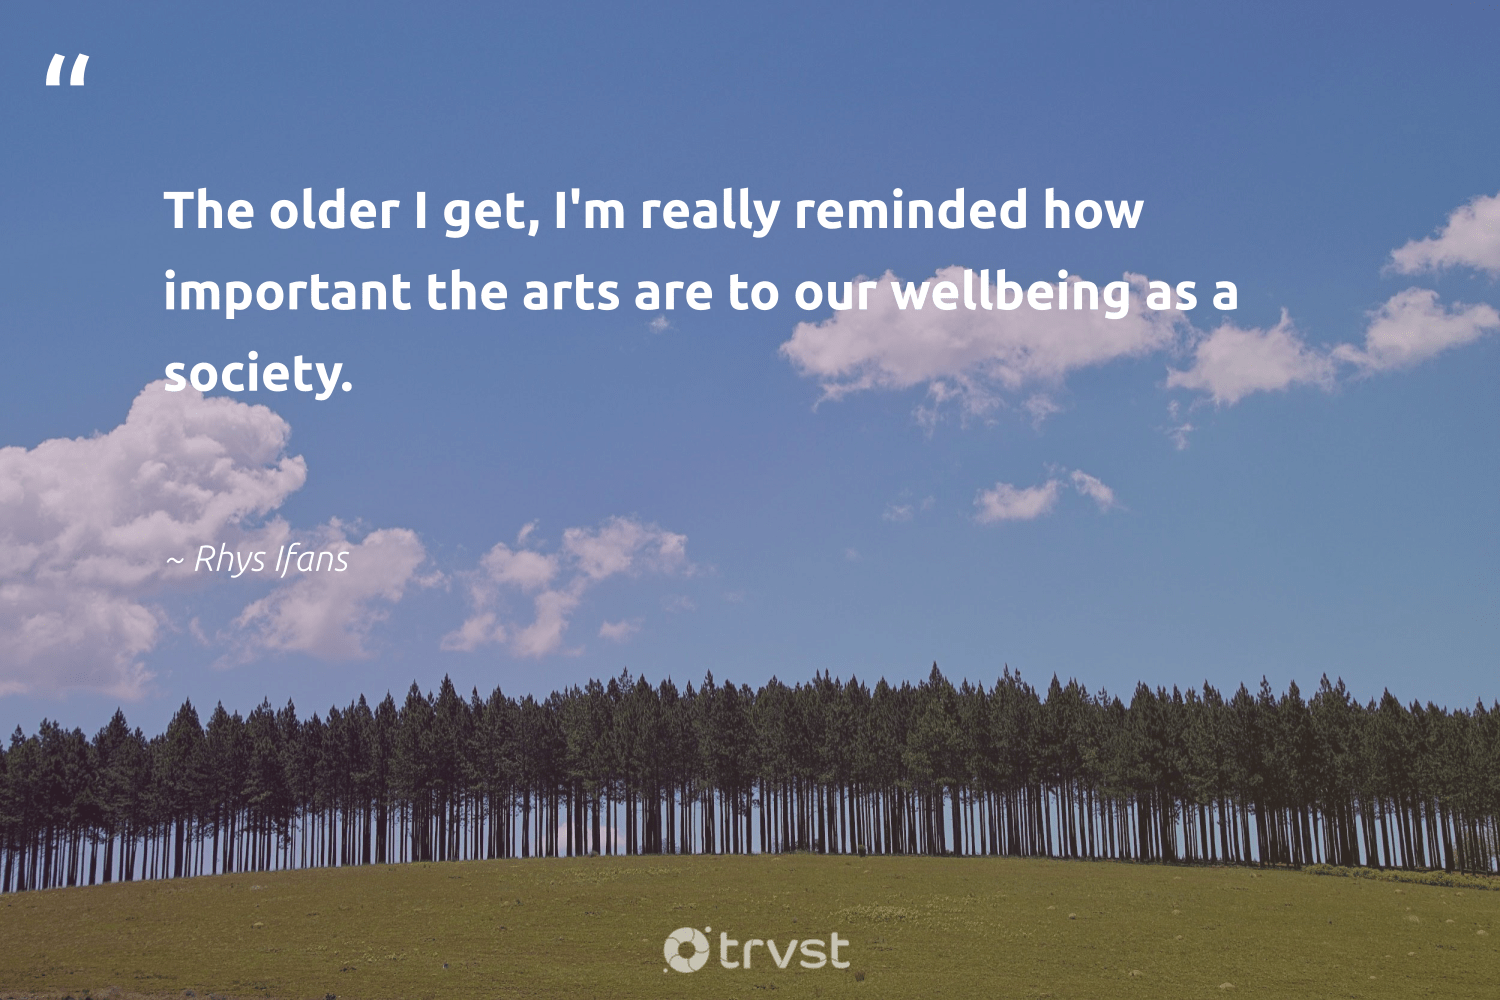 """The older I get, I'm really reminded how important the arts are to our wellbeing as a society.""  - Rhys Ifans #trvst #quotes #wellbeing #society #wellness #nevergiveup #mindset #takeaction #healthy #togetherwecan #begreat #beinspired"